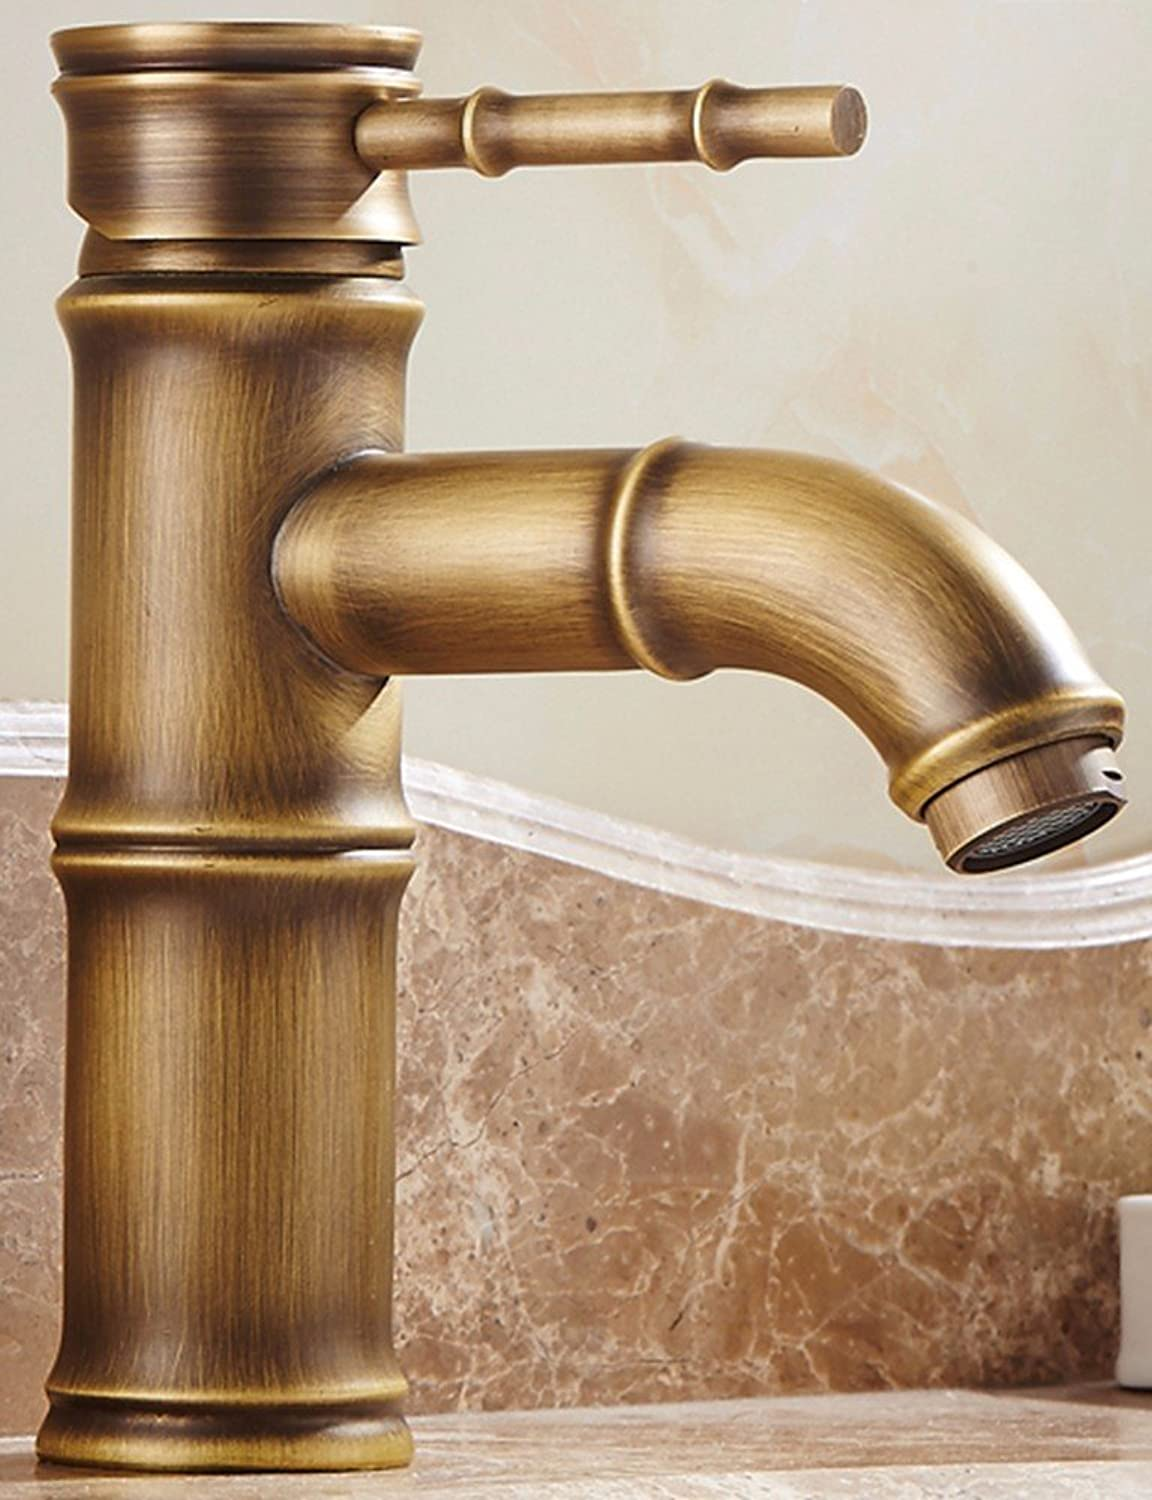 AWXJX European Style Retroot And Cold Single Handle Single Hole Washbasinll Copper Sink Faucet